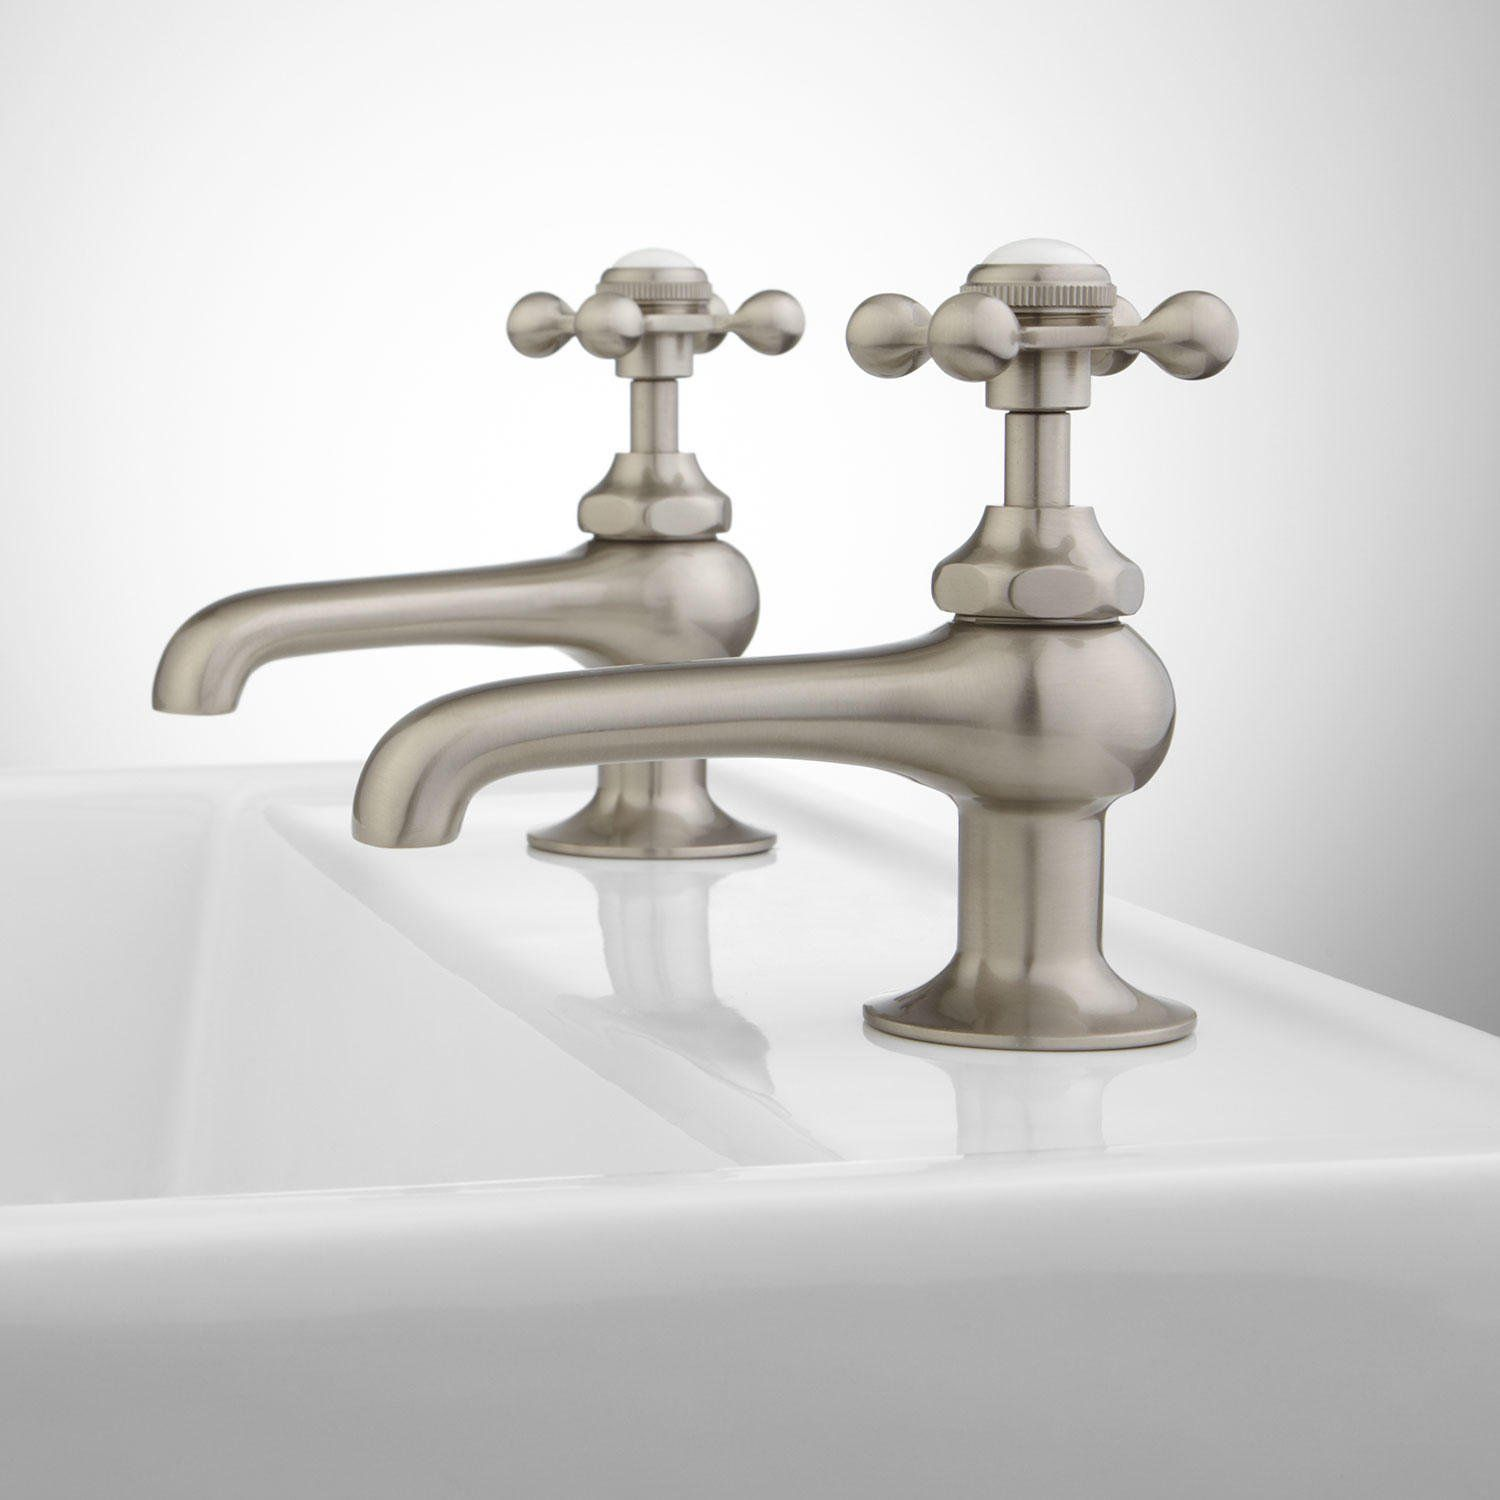 Reproduction Cross Handle Sink Faucets Pair Chrome Bathroom